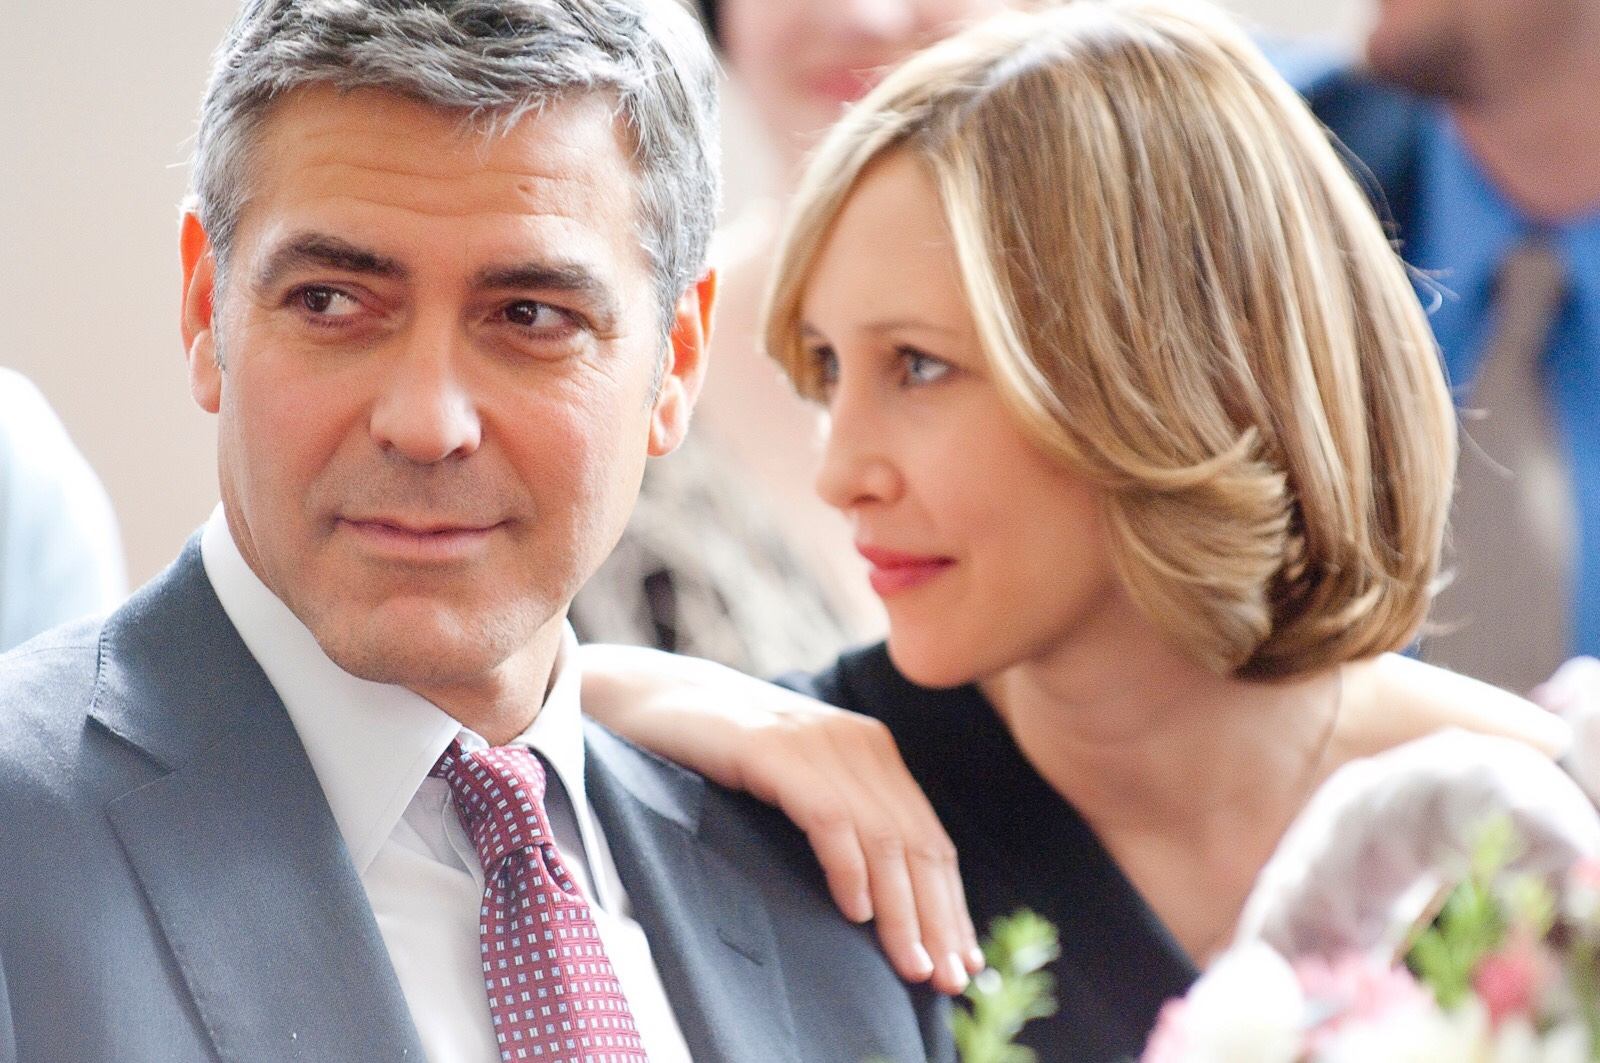 Clooney and Farmiga; she has her hand on his shoulder as both look towards the left